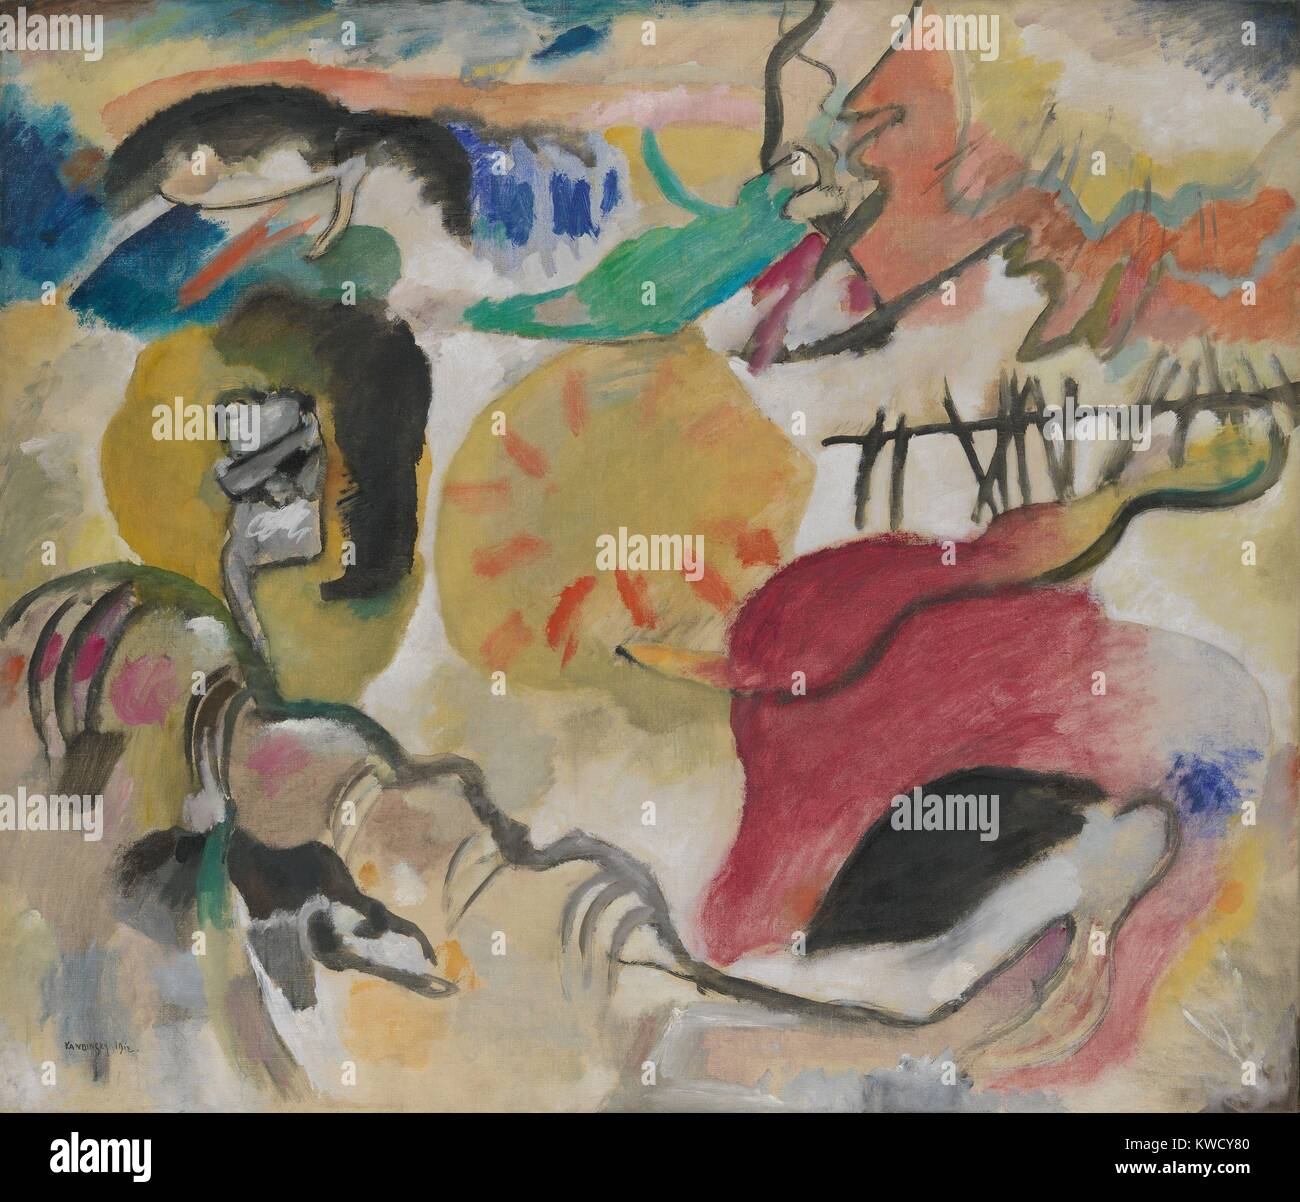 Improvisation 27 (Garden of Love II), by Vasily Kandinsky, 1912, Russian German Expressionist. This painting contains - Stock Image